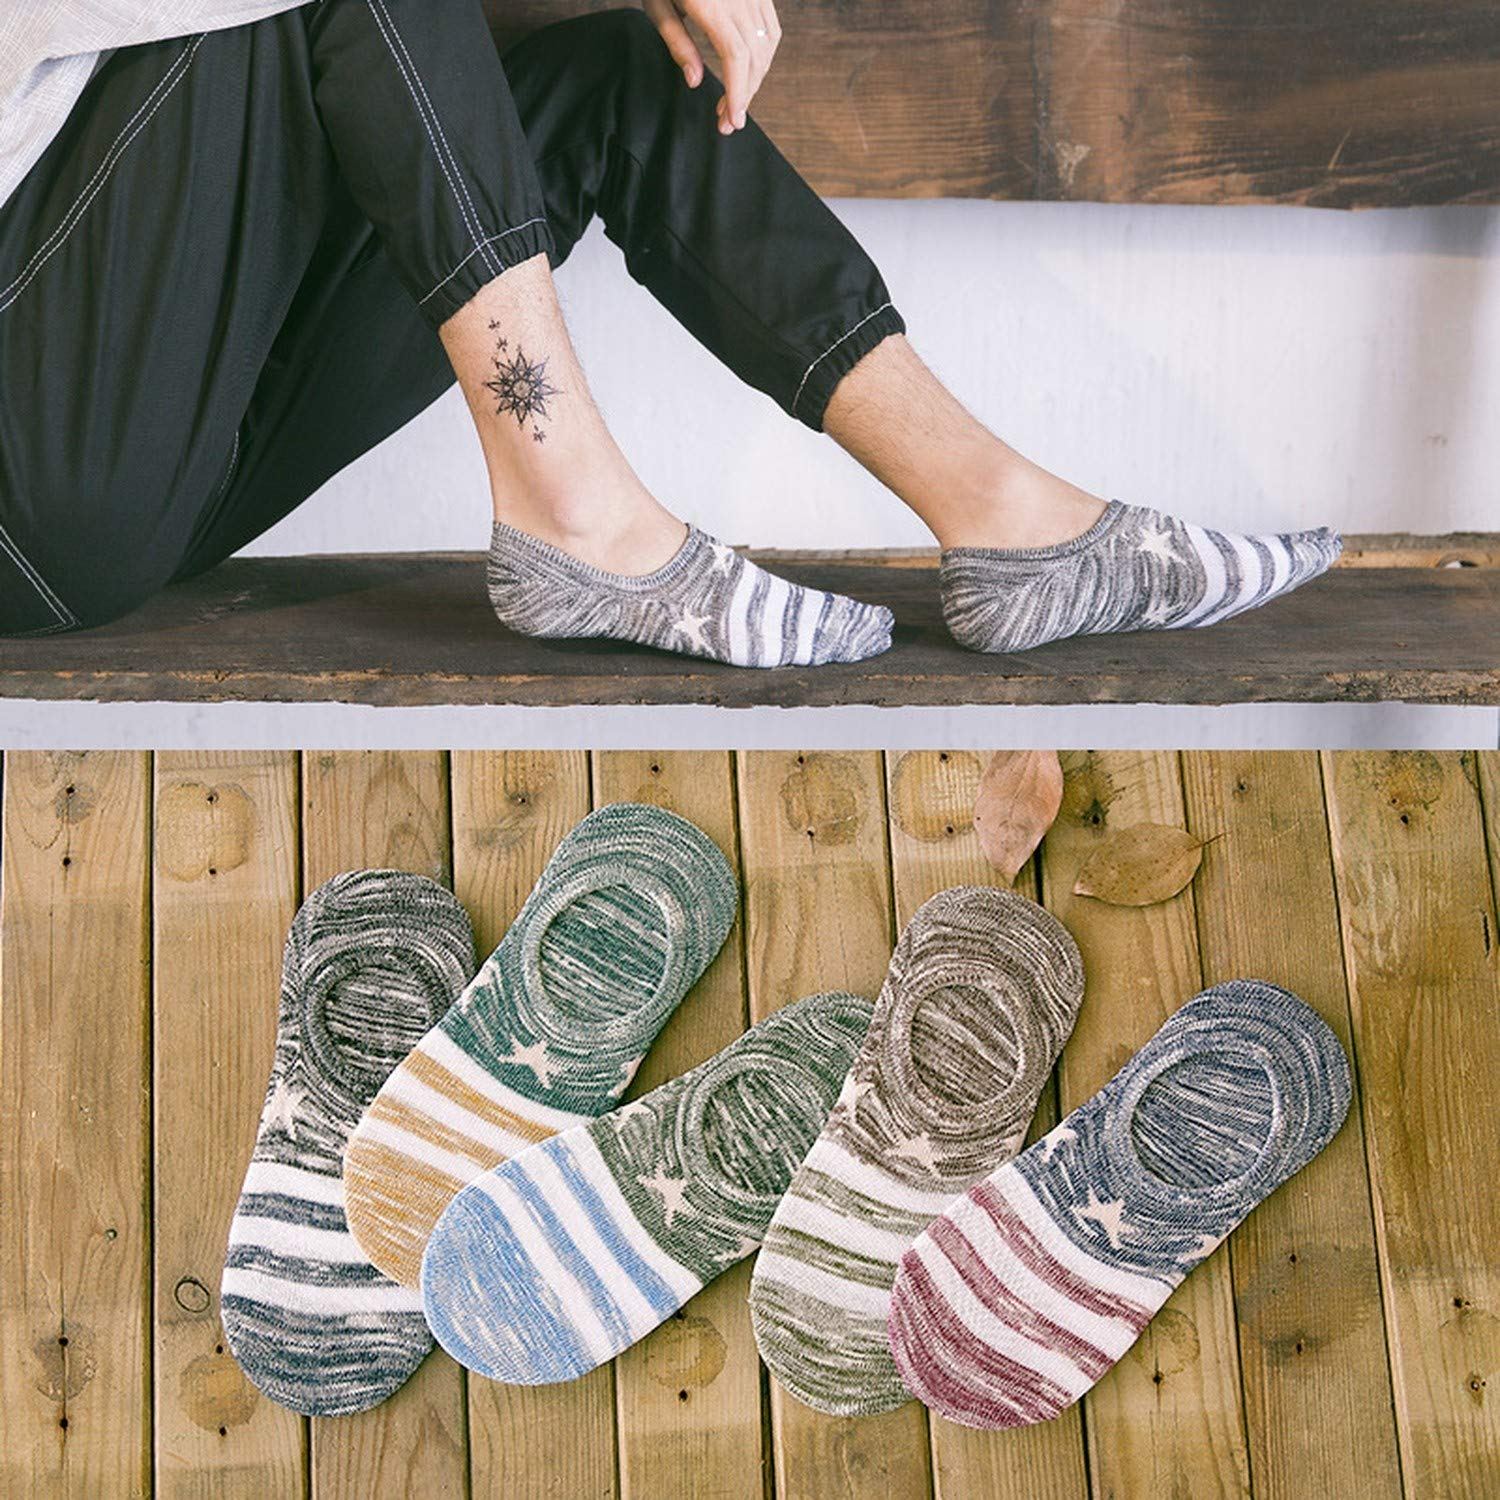 Hot Pentagram Boat Socks Shallow Mouth Men Striped Cotton Socks Summer Non-Slip Ankle Contrast Color Sox